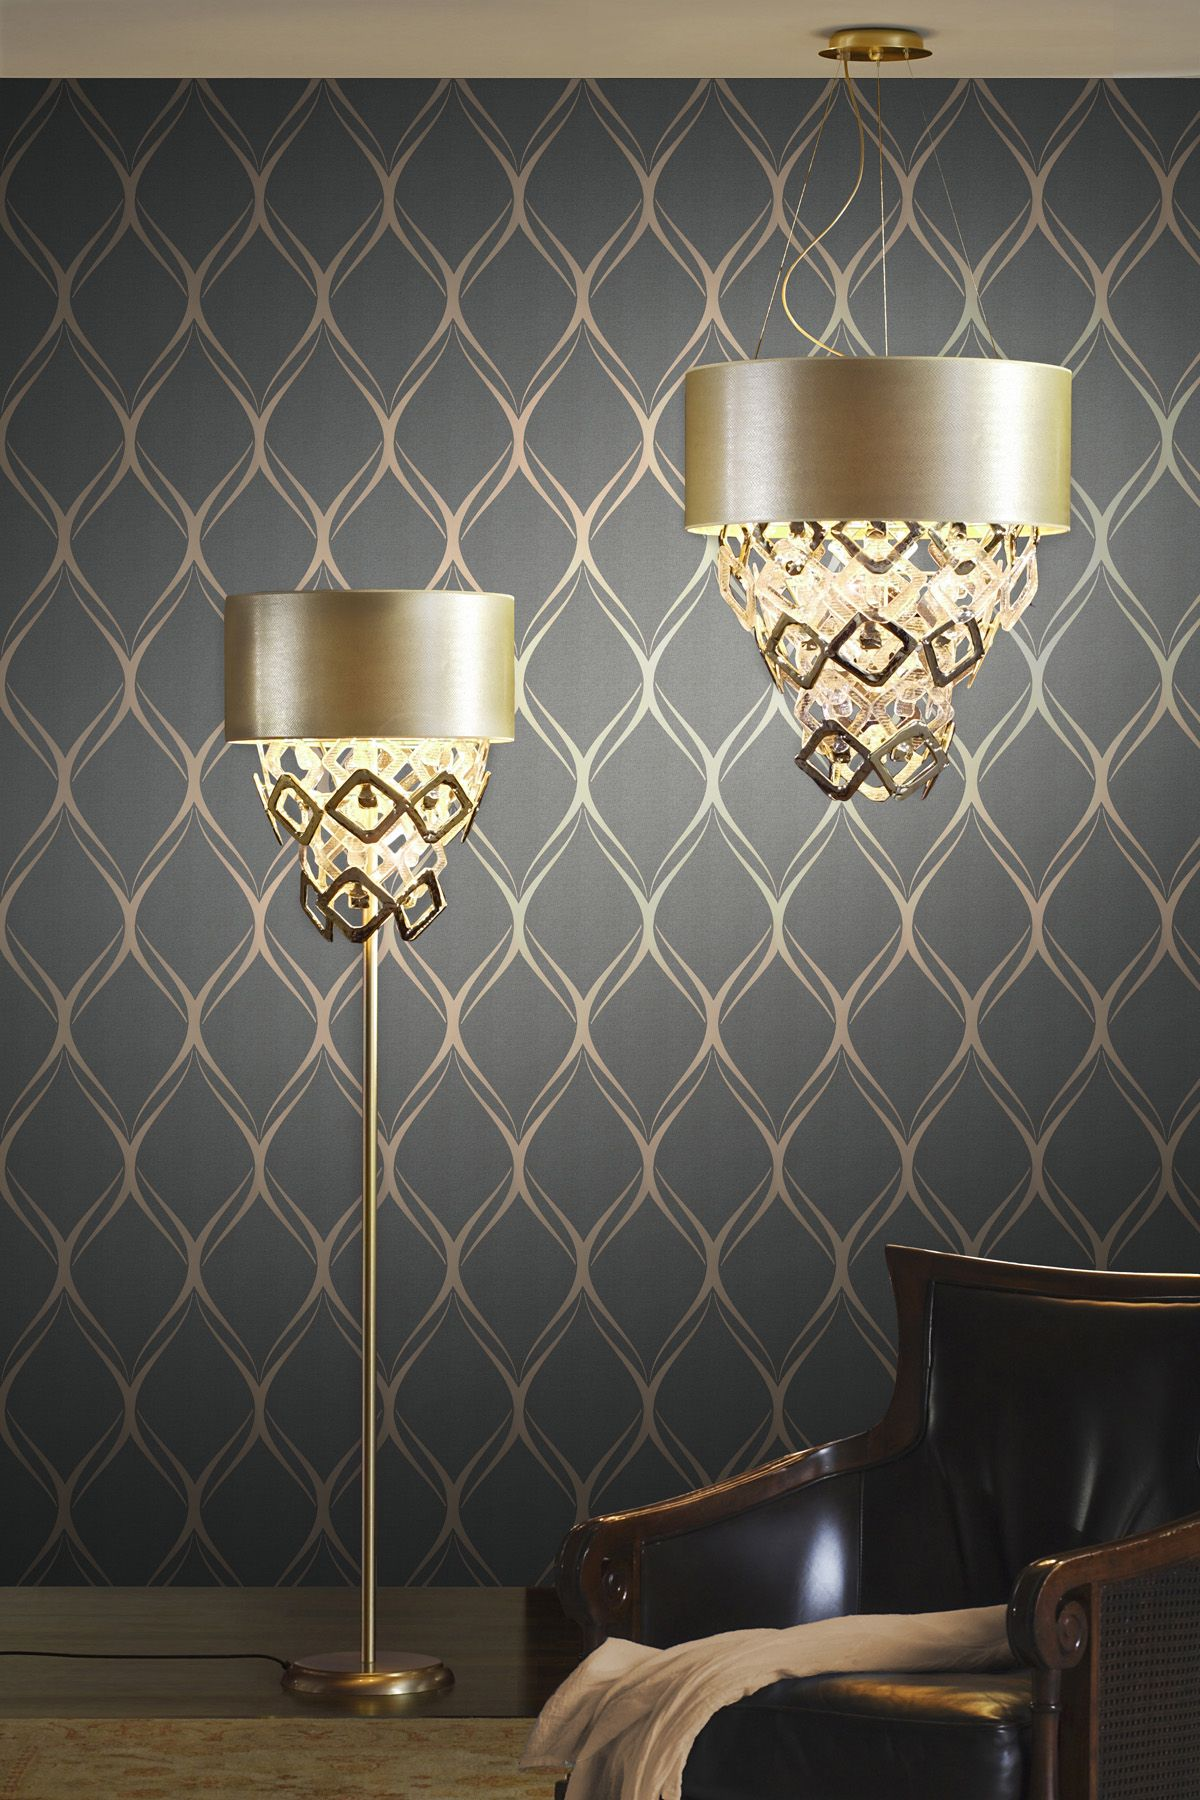 wallpaper ideas for living room feature wall furniture modern luxe decor idea with a dreamy